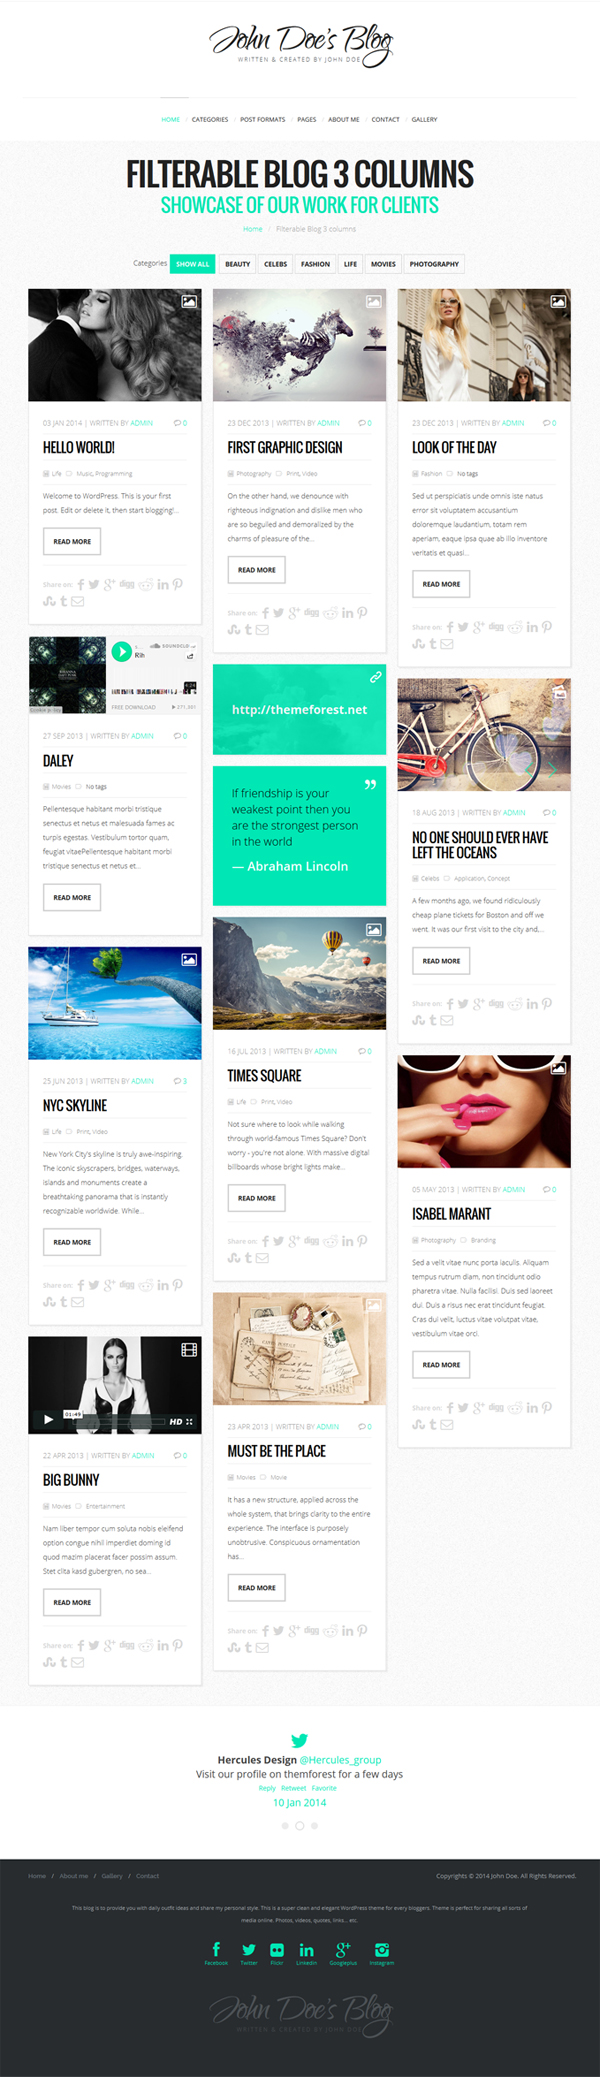 John Doe's Blog - Clean WordPress Blog Theme